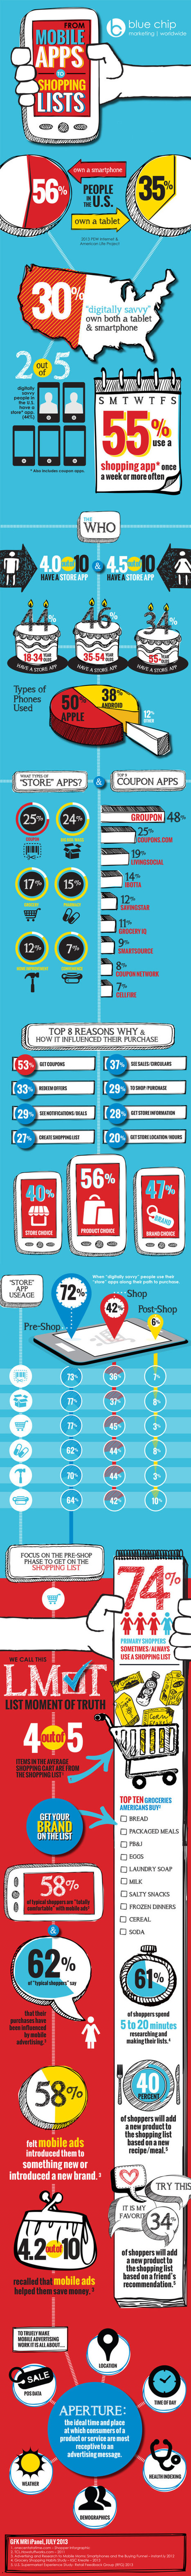 Infographic: Holiday Guide to Mobile Marketing - Marketing Technology Blog | Digital marketing | Scoop.it